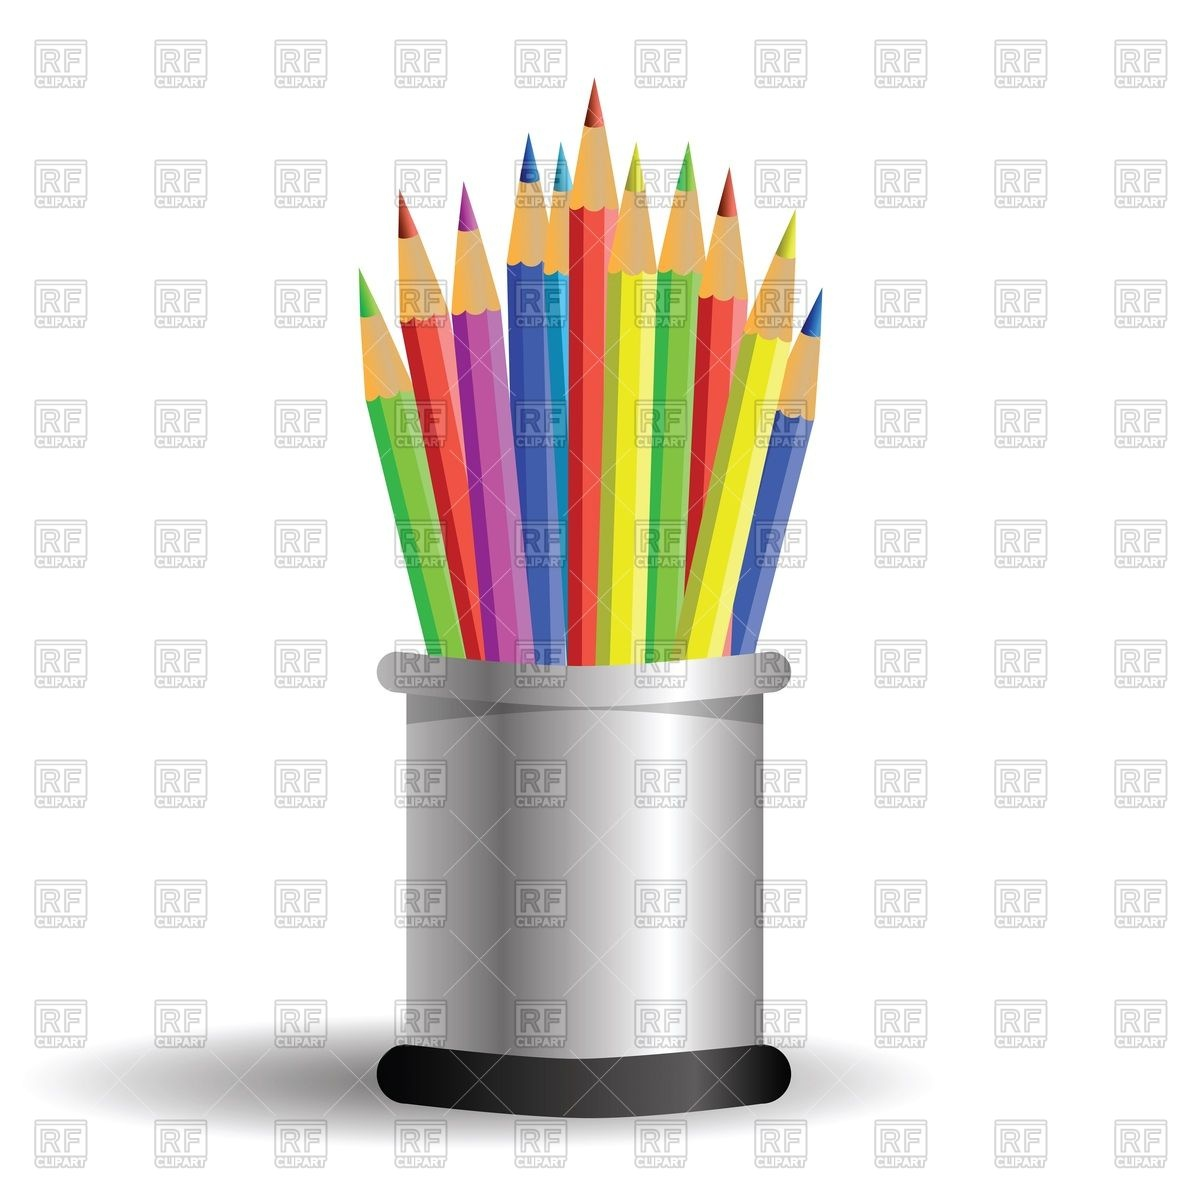 Pens and pencils in cylindrical pencil case Vector Image #19763.